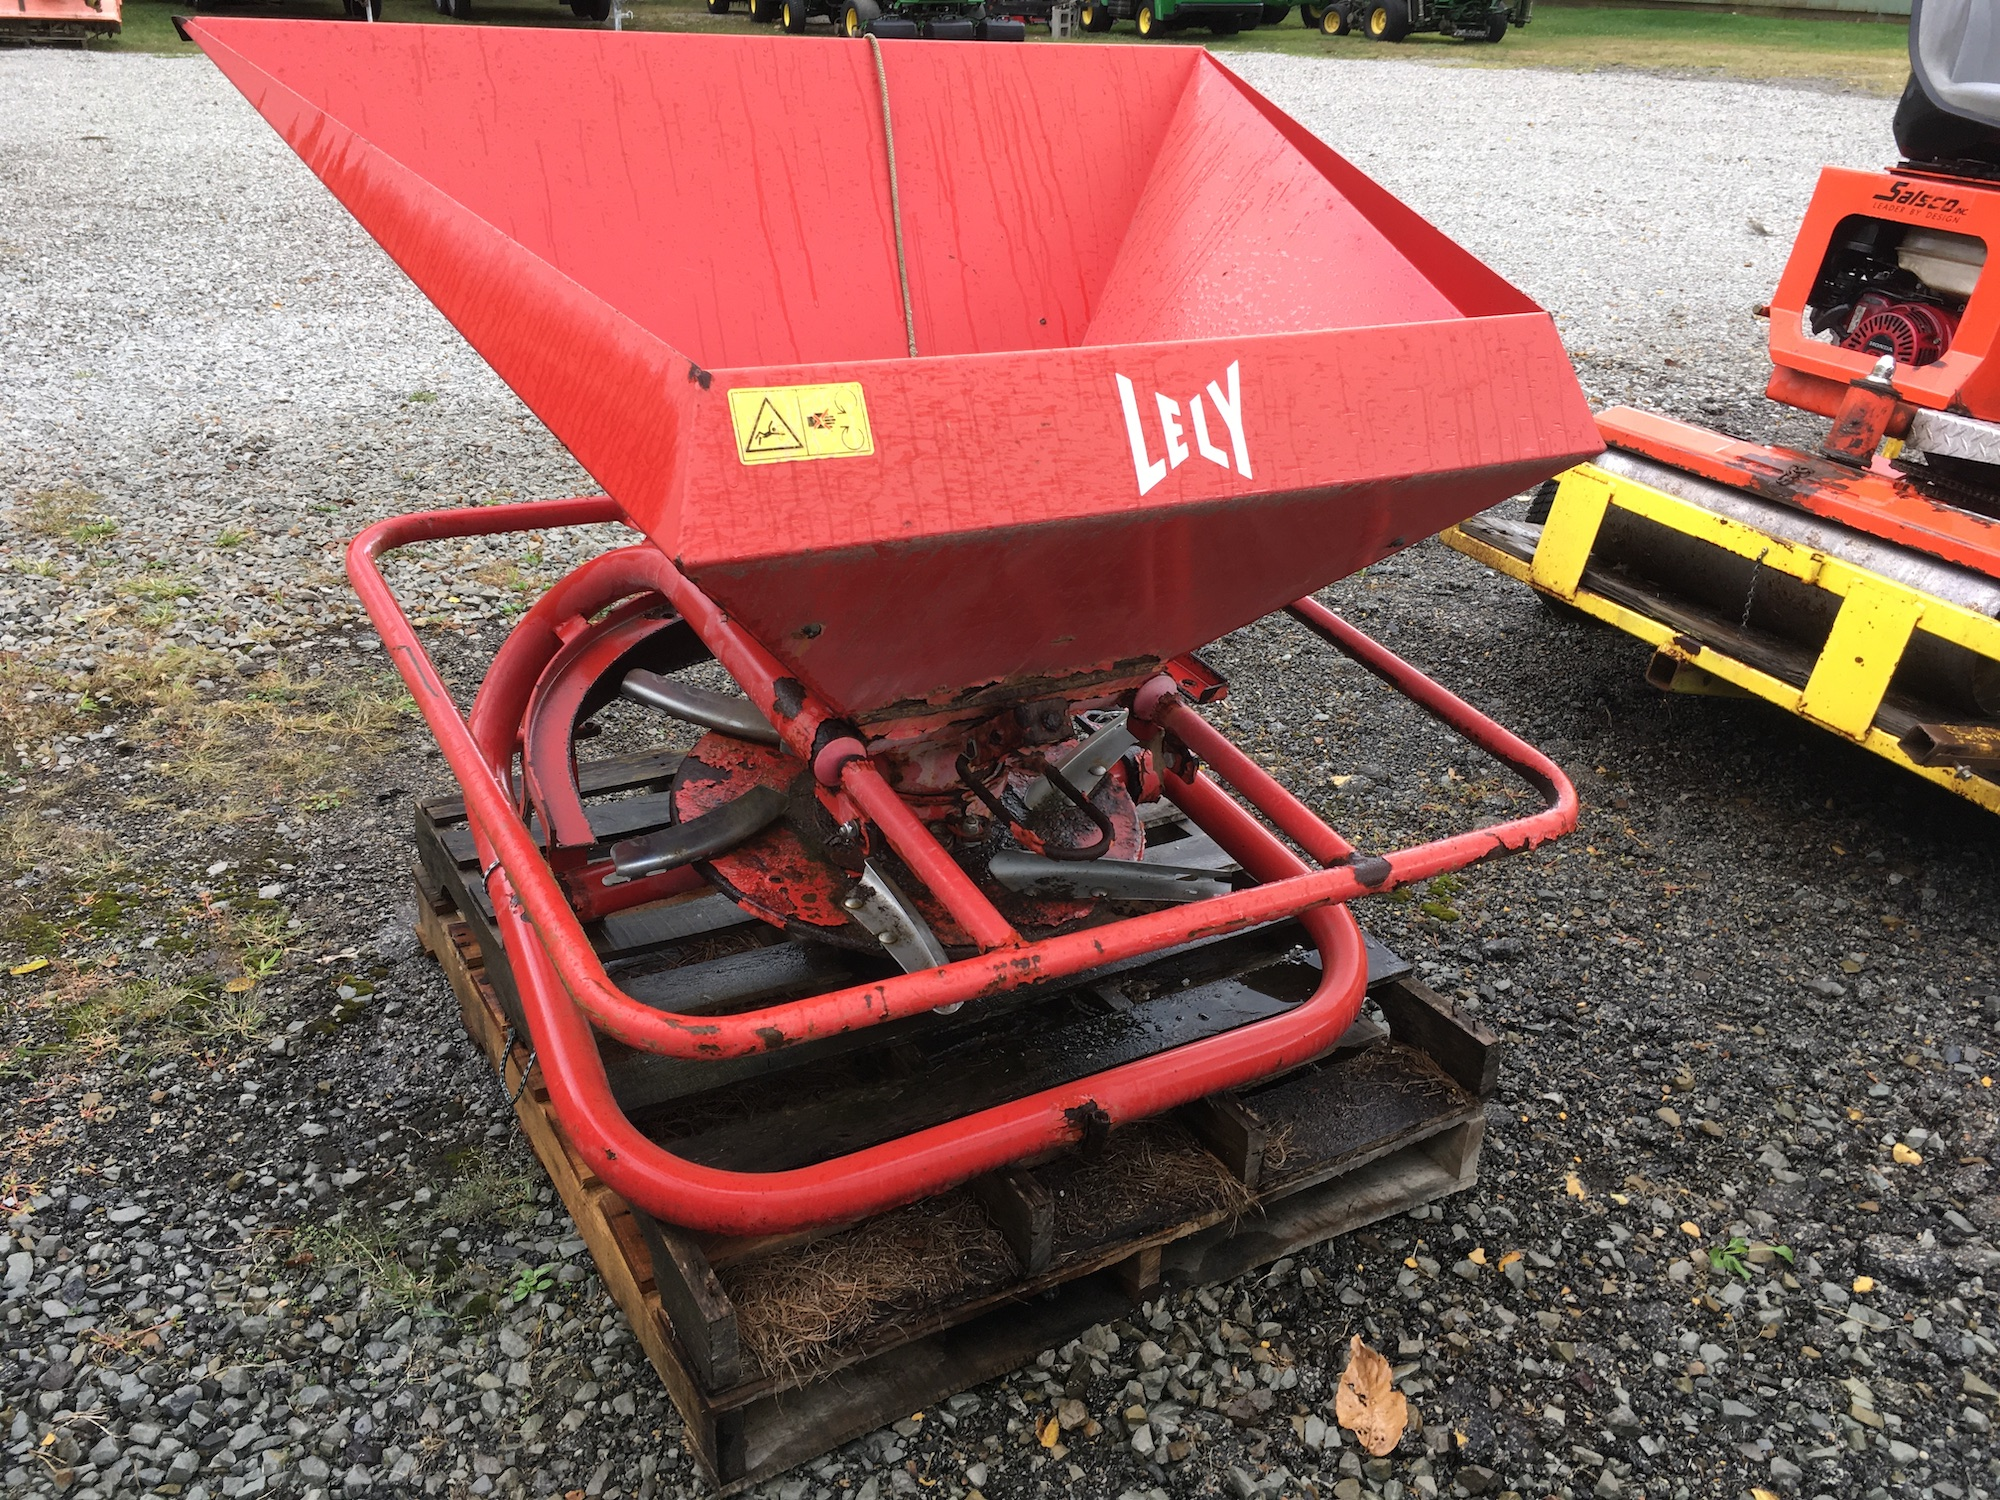 Lely-3-Point-PTO-Spreader-01